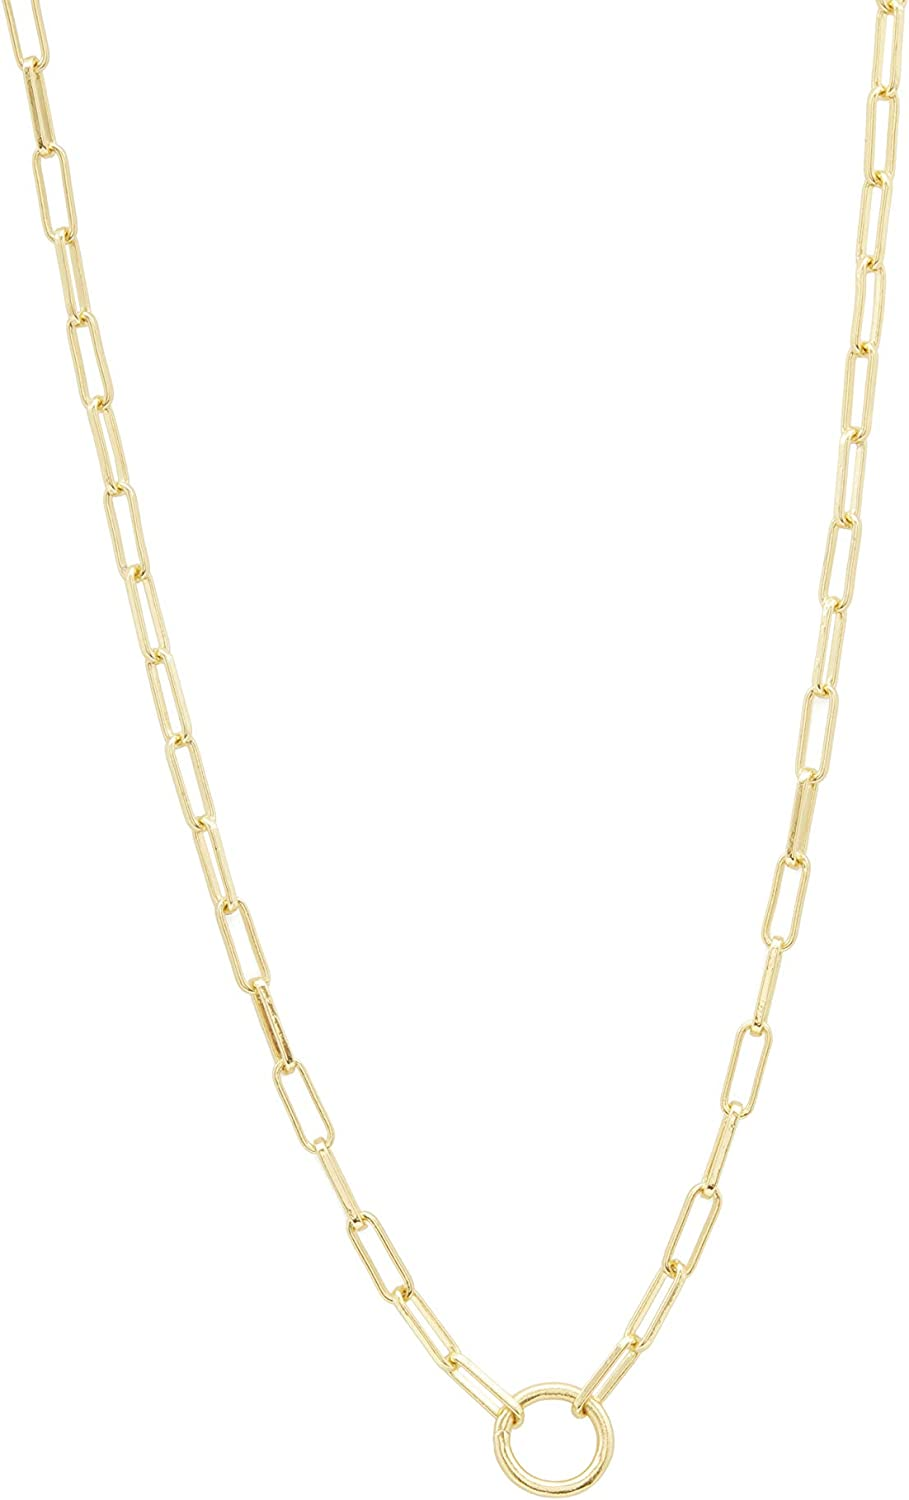 gorjana Women's Parker Paperclip Link Chain Necklace, 18k Gold Plated, Chunky Clasp